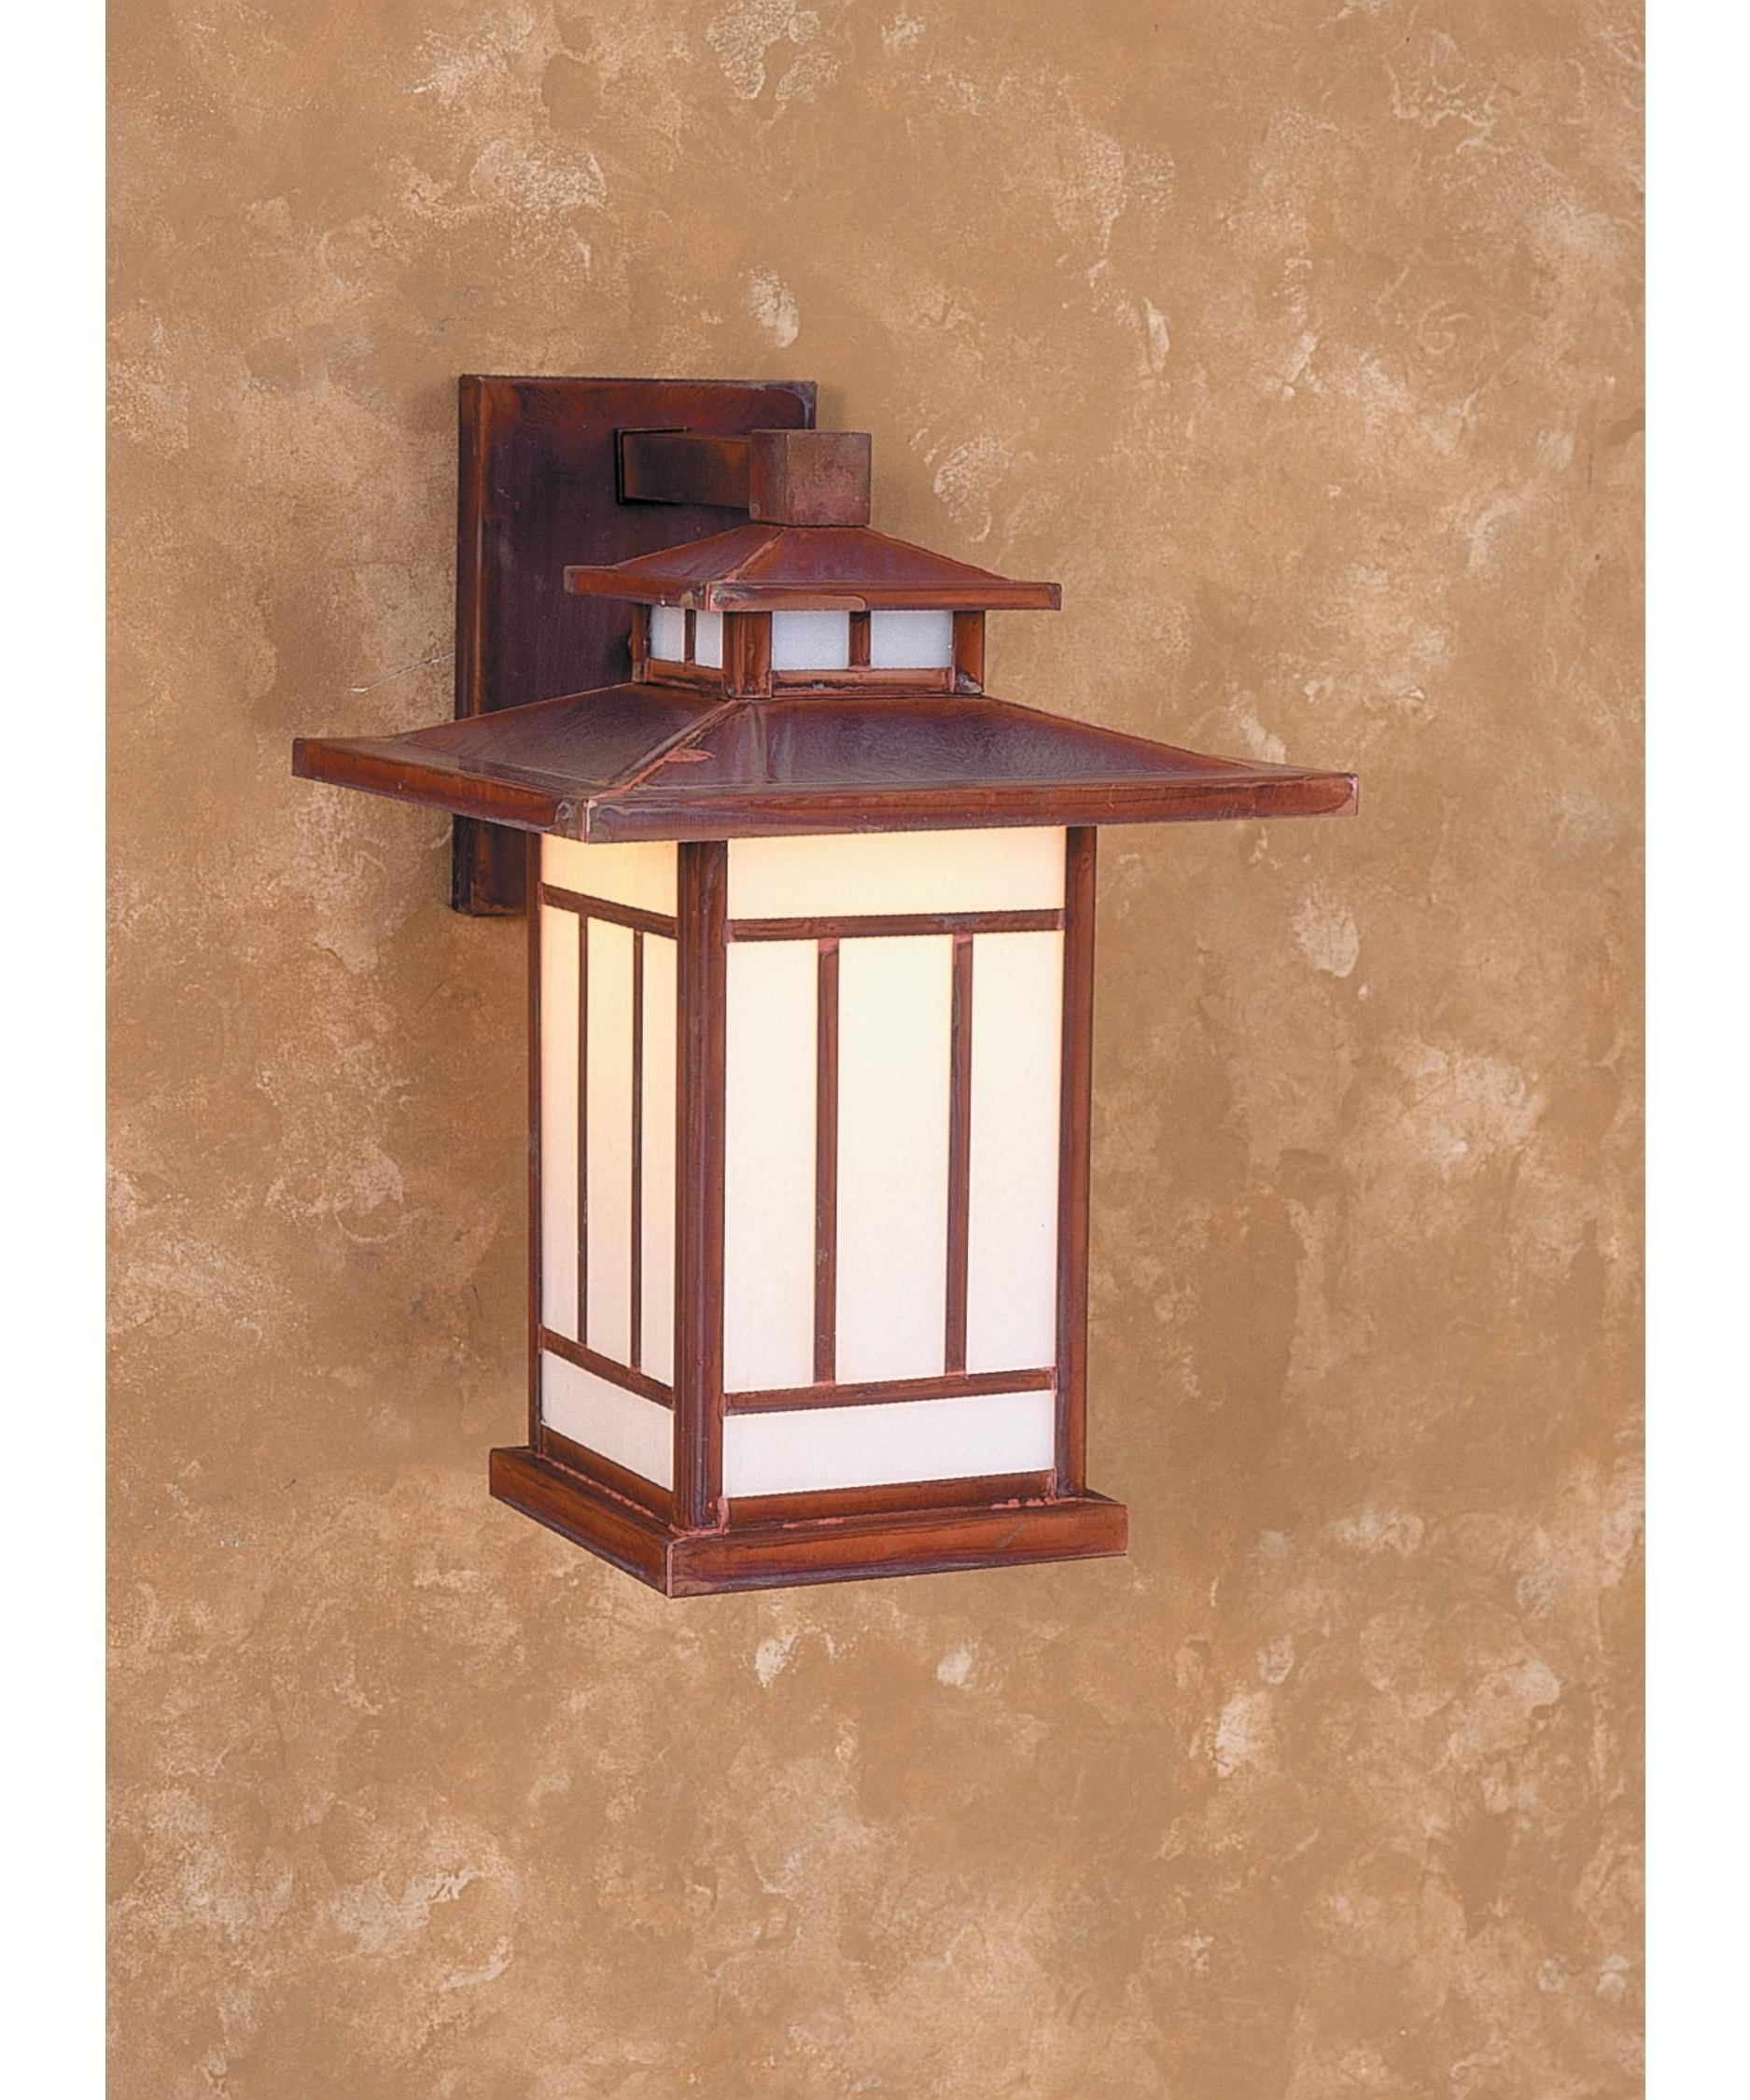 Arroyo Craftsman Kennebec Shown In Raw Copper Finish And White Regarding Most Recently Released Made In Usa Outdoor Wall Lighting (Gallery 8 of 20)